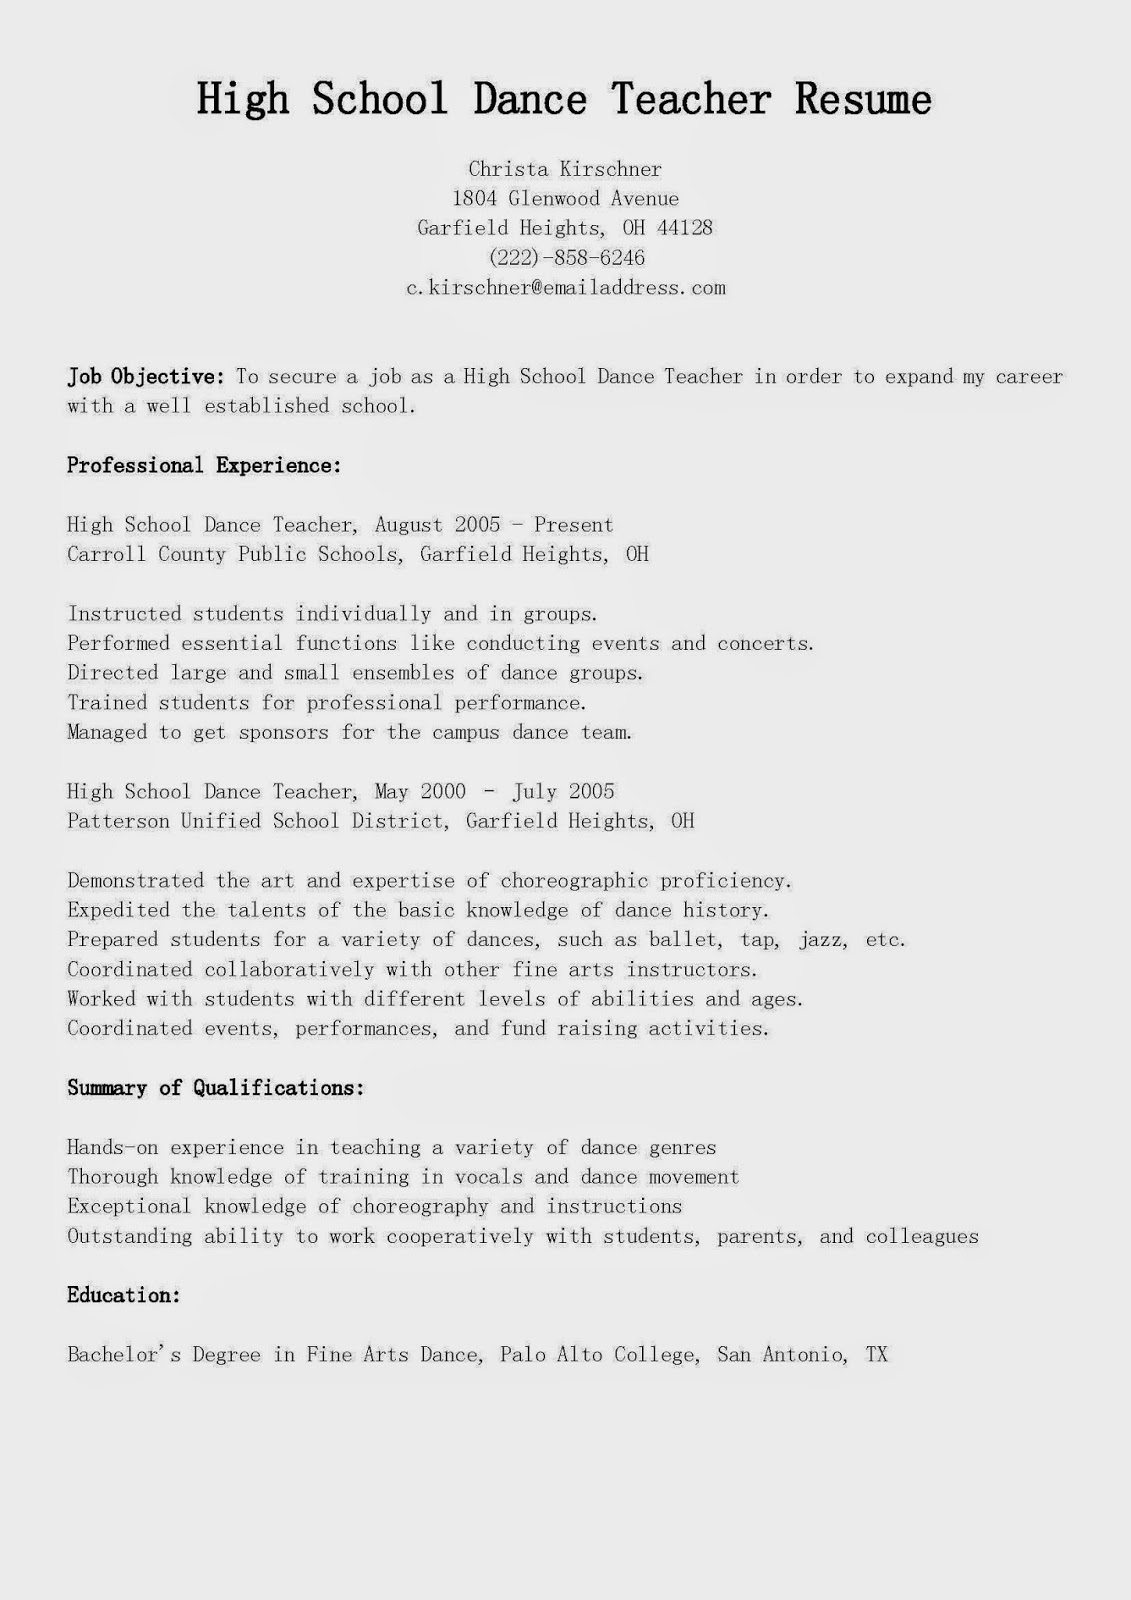 Sample Cover Letter For Teaching Position With Experience Lawteched Venja  Co Resume And Cover Letter Ideas